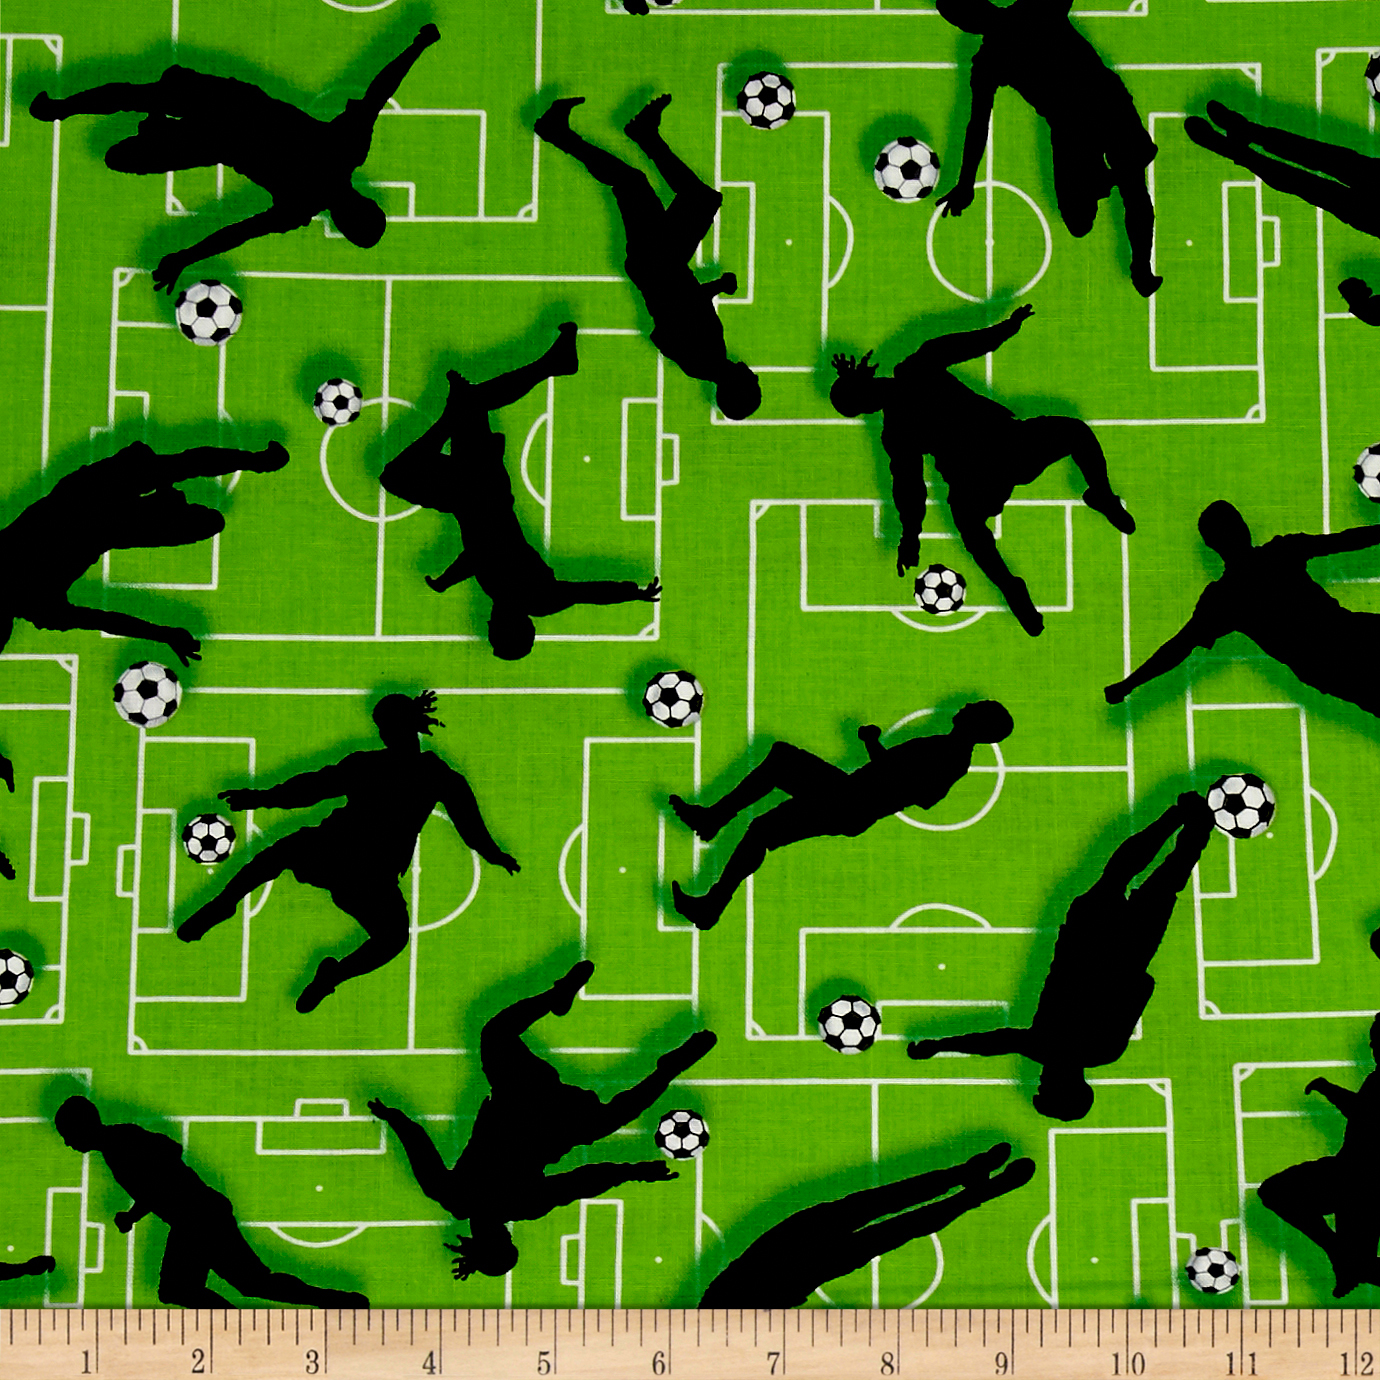 Score! Soccer Silhouettes Green Fabric by Henry Glass in USA